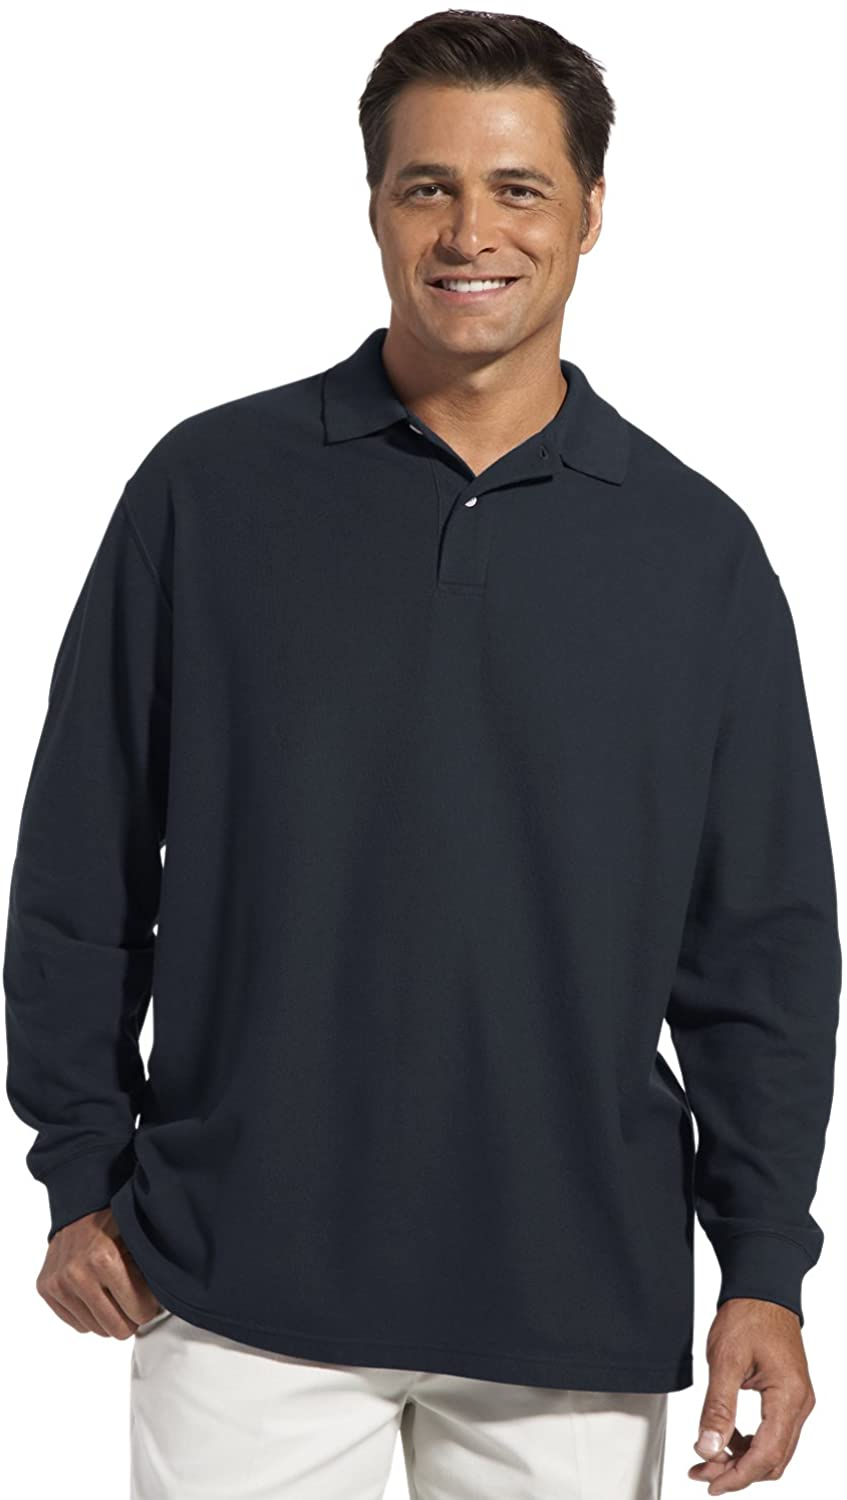 Harbor Bay by DXL Big and Tall Honeycomb Pique Polo Shirt